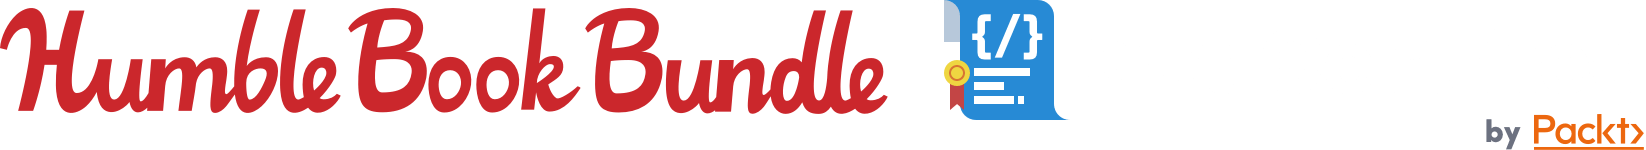 Humble Book Bundle: Get Certified by Packt